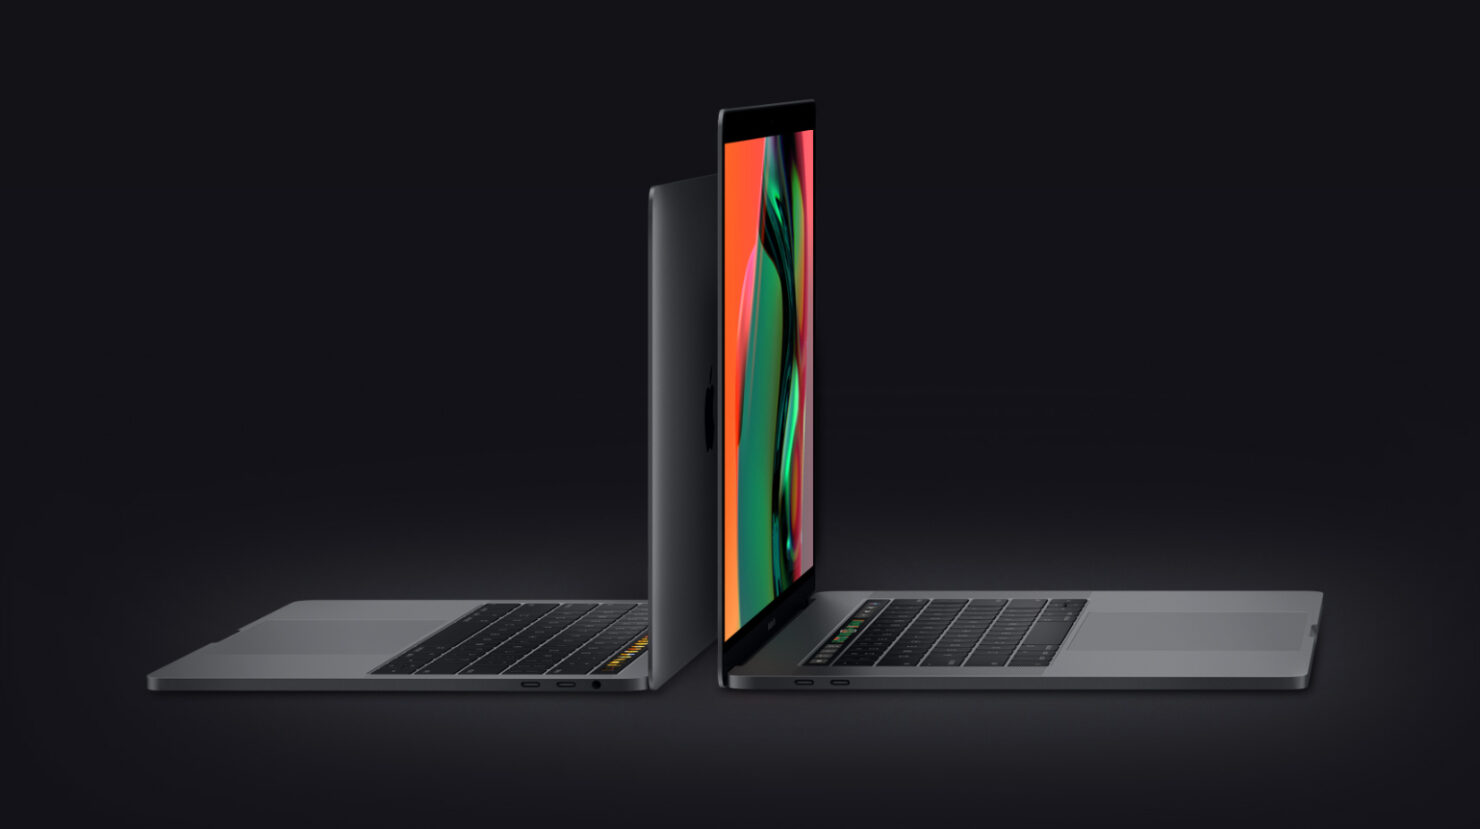 Macs are preferred for increasing your productivity